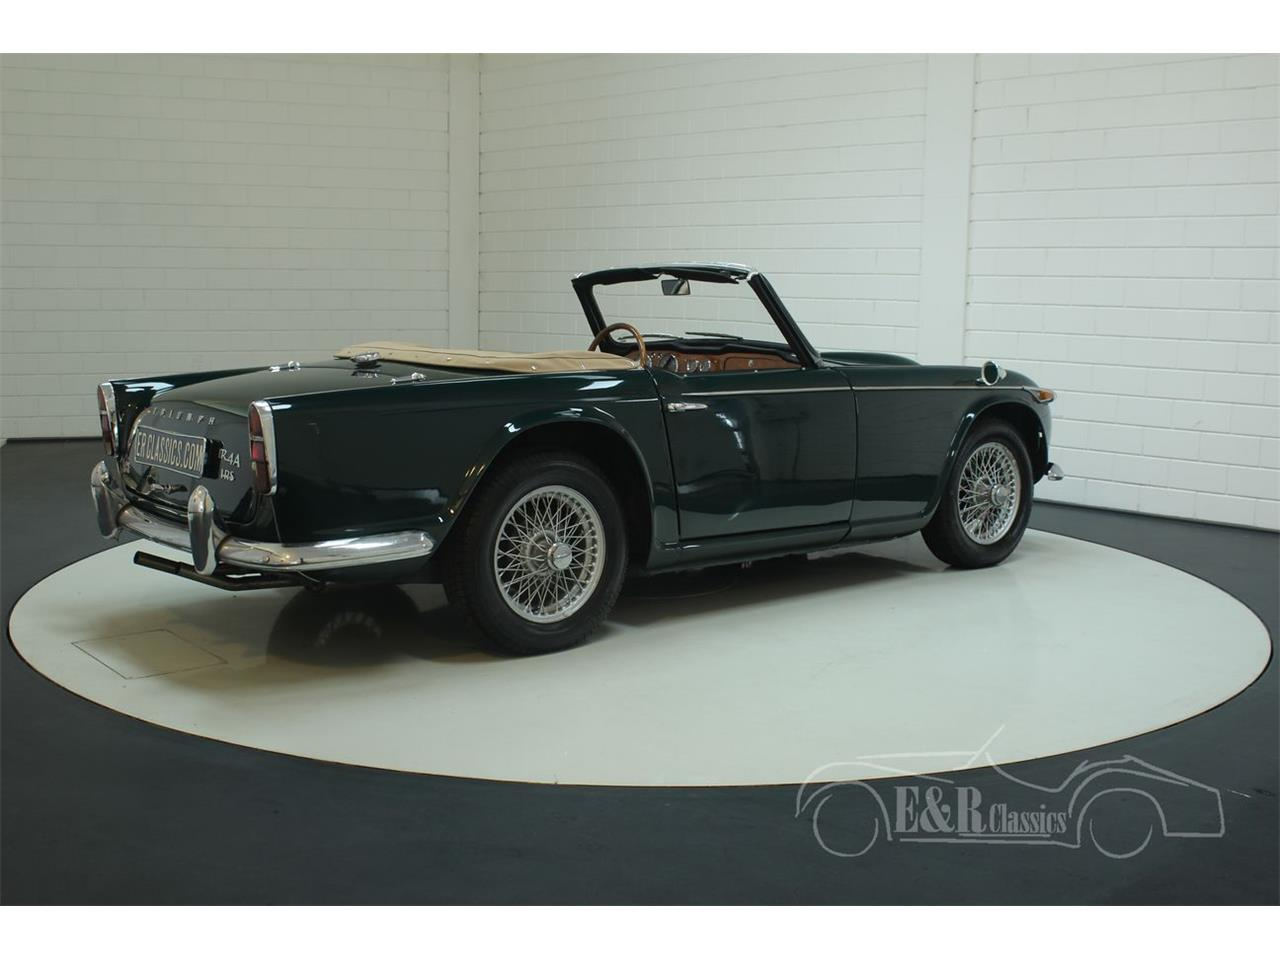 Large Picture of Classic '67 TR4 located in Noord-Brabant - $55,750.00 - Q45O